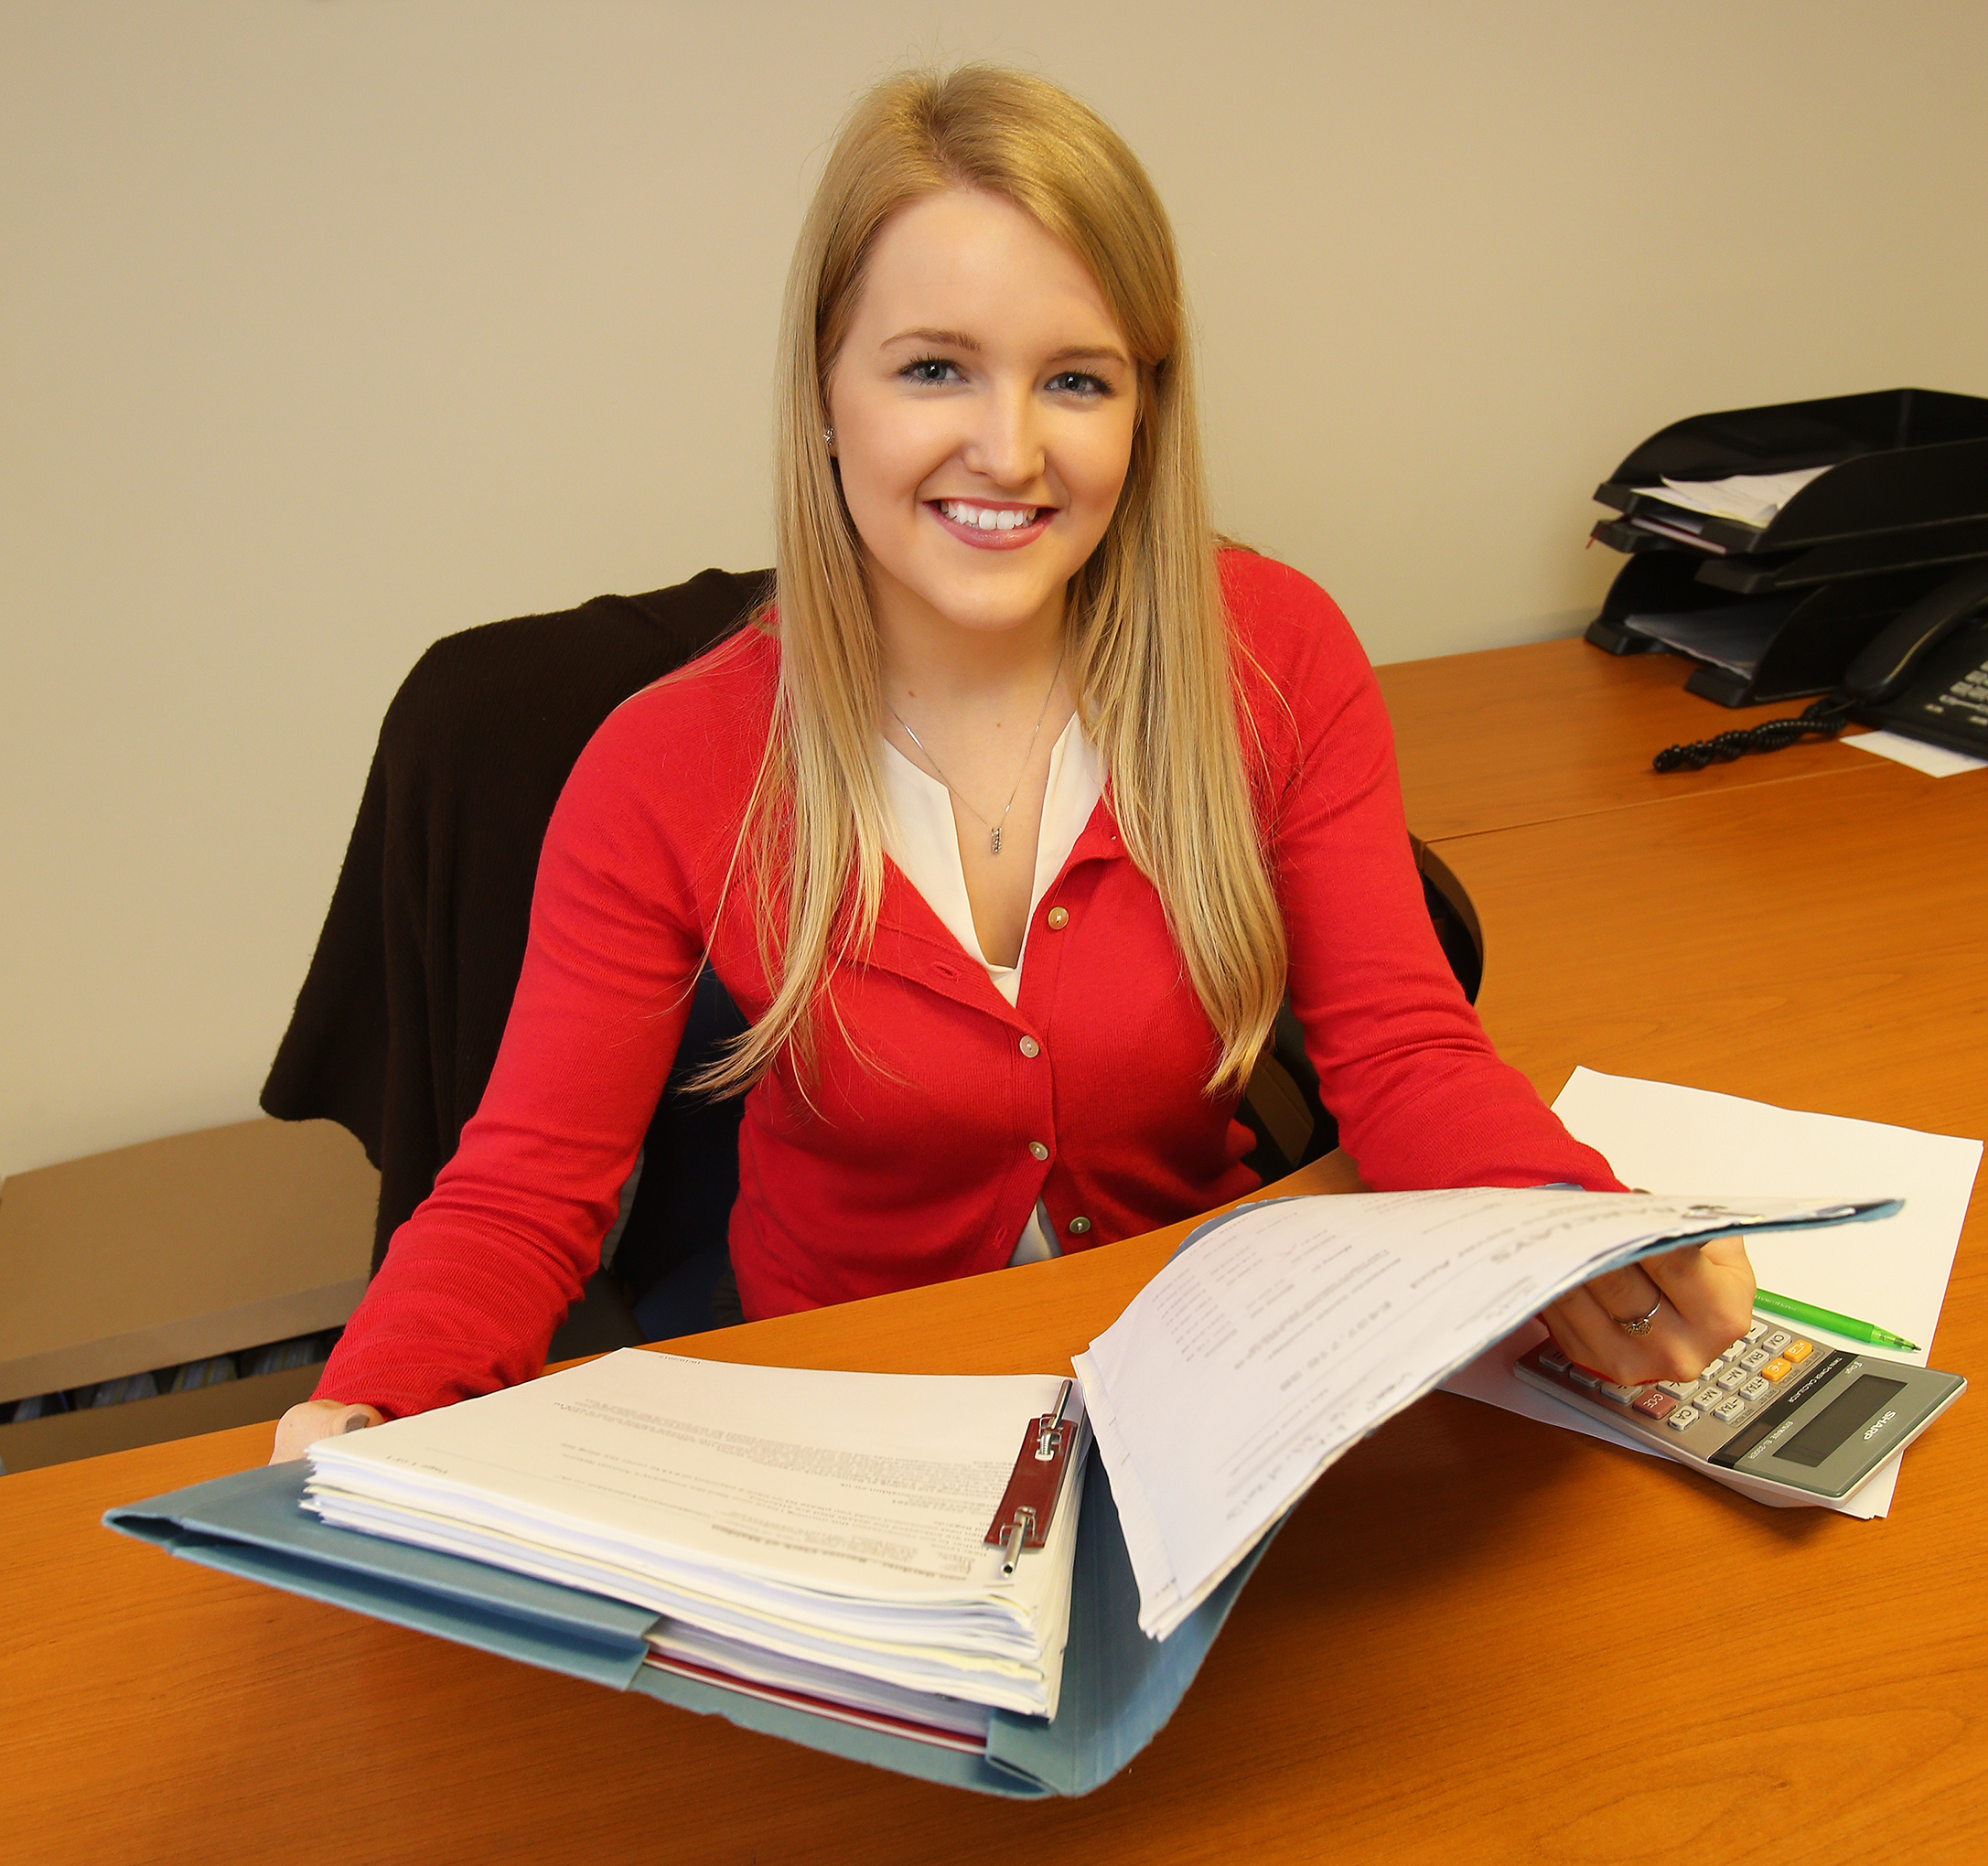 Lucy White, 19, is an apprentice accountant